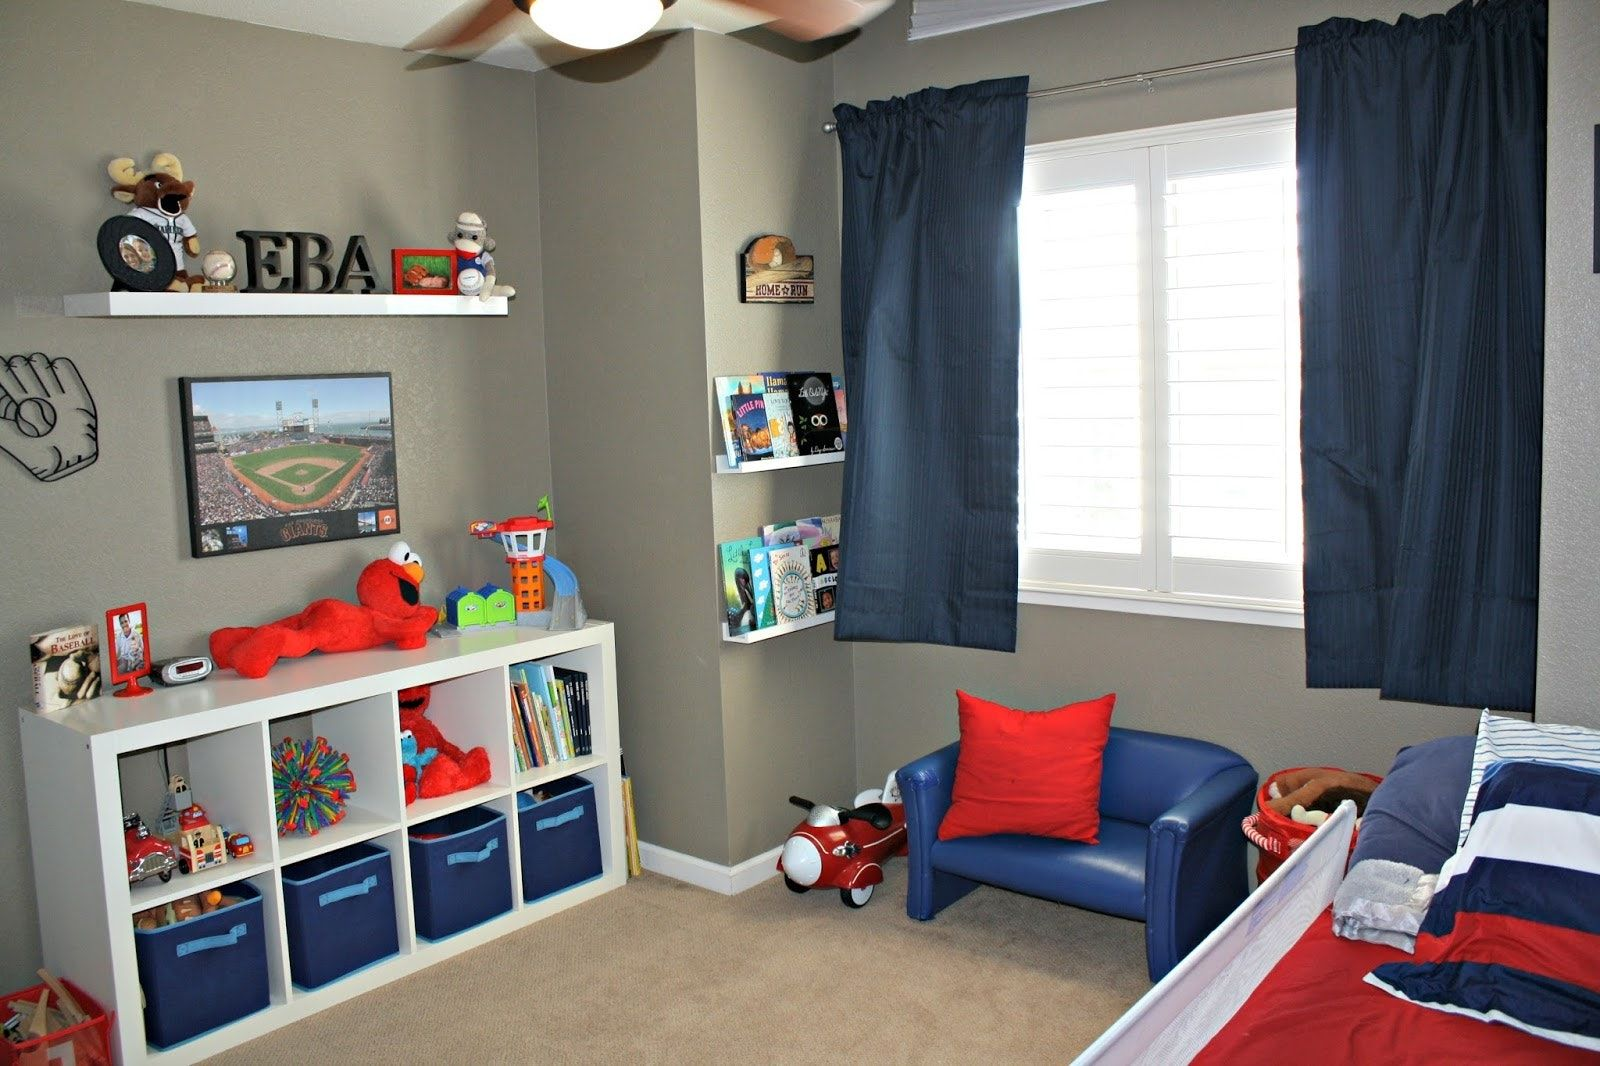 20 4 Year Old Boy Room Ideas Bedroom Closet Door Ideas Check More At Http Davidhyounglaw C Modern Toddler Bedroom Kids Bedroom Designs Boy Toddler Bedroom